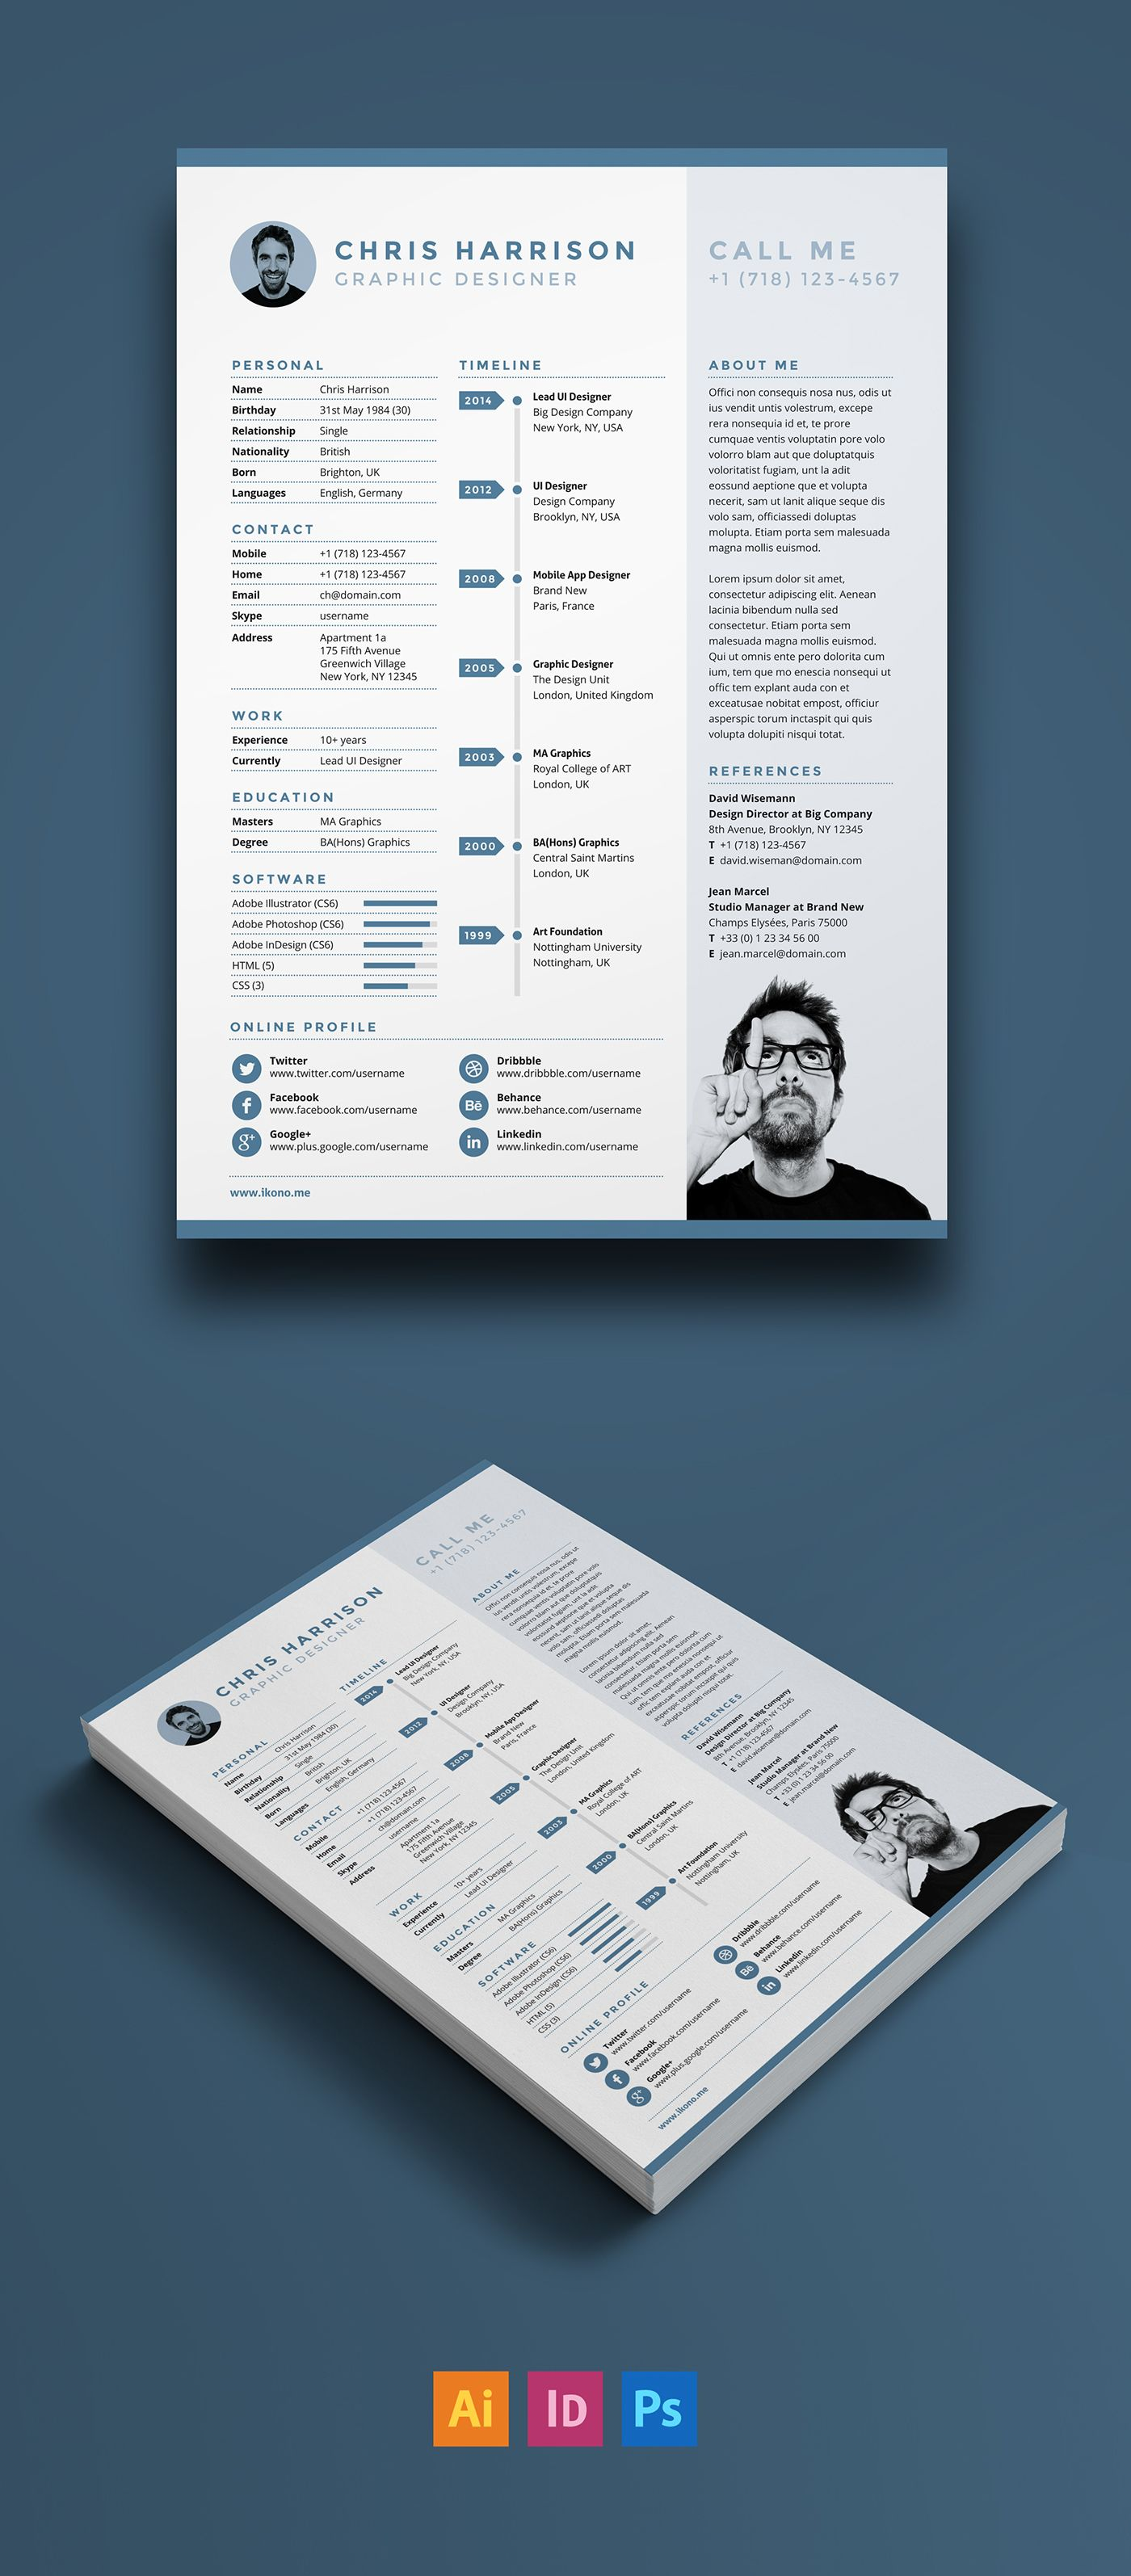 Free Resume Is The Single Page Resume Template You Can Download